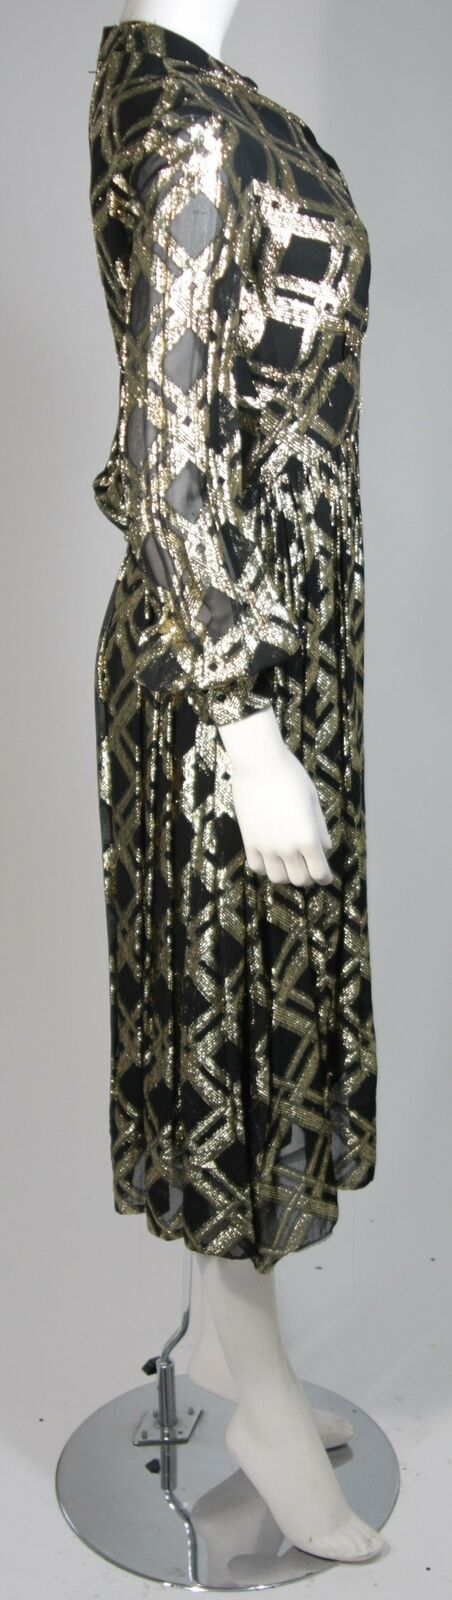 CEIL CHAPMAN Black Silk and Gold Cocktail Dress S… - image 6